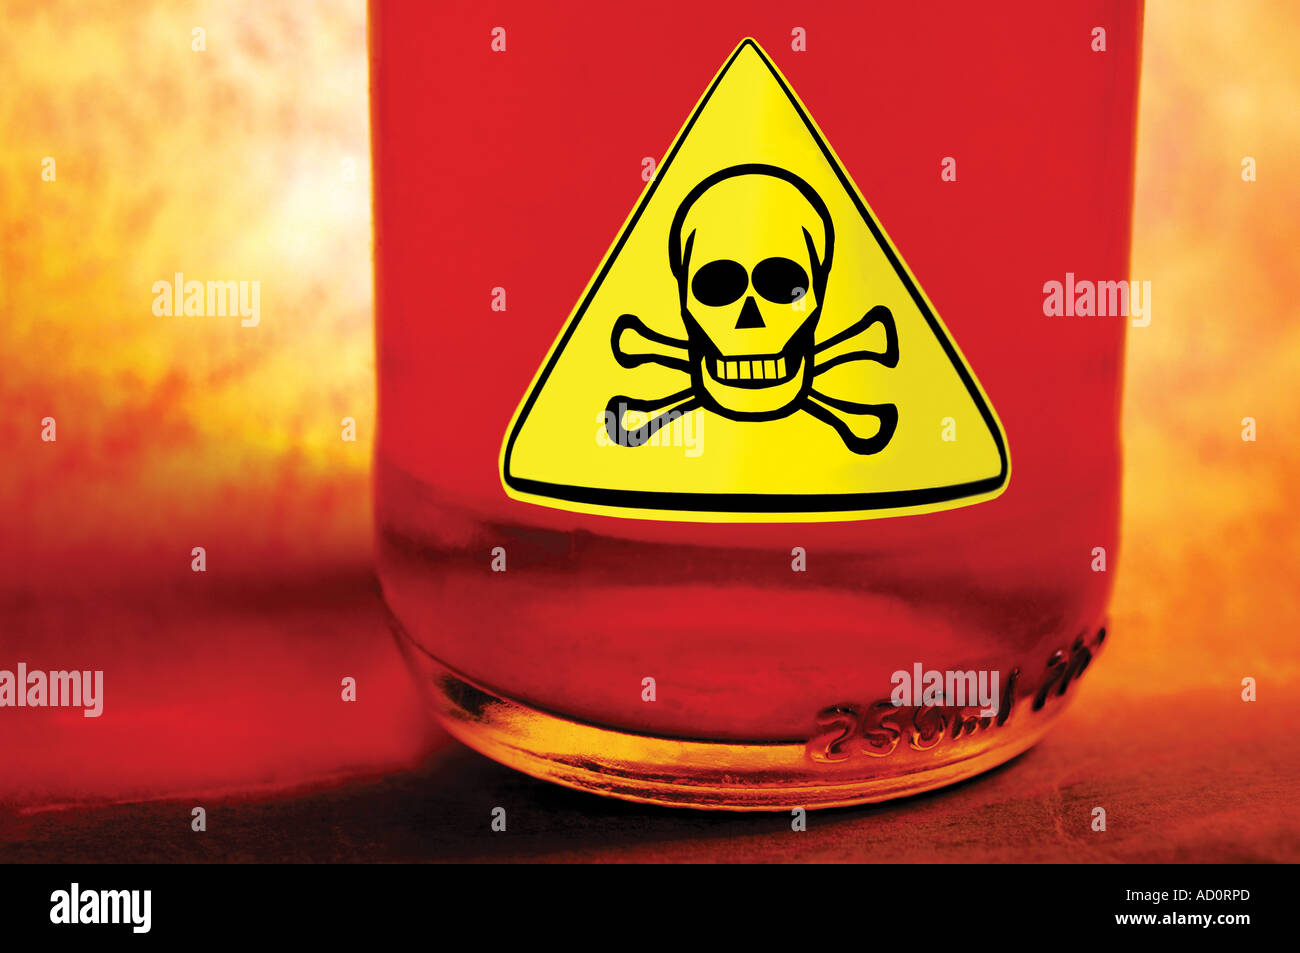 scull crossbones poison danger warning symbol - Stock Image